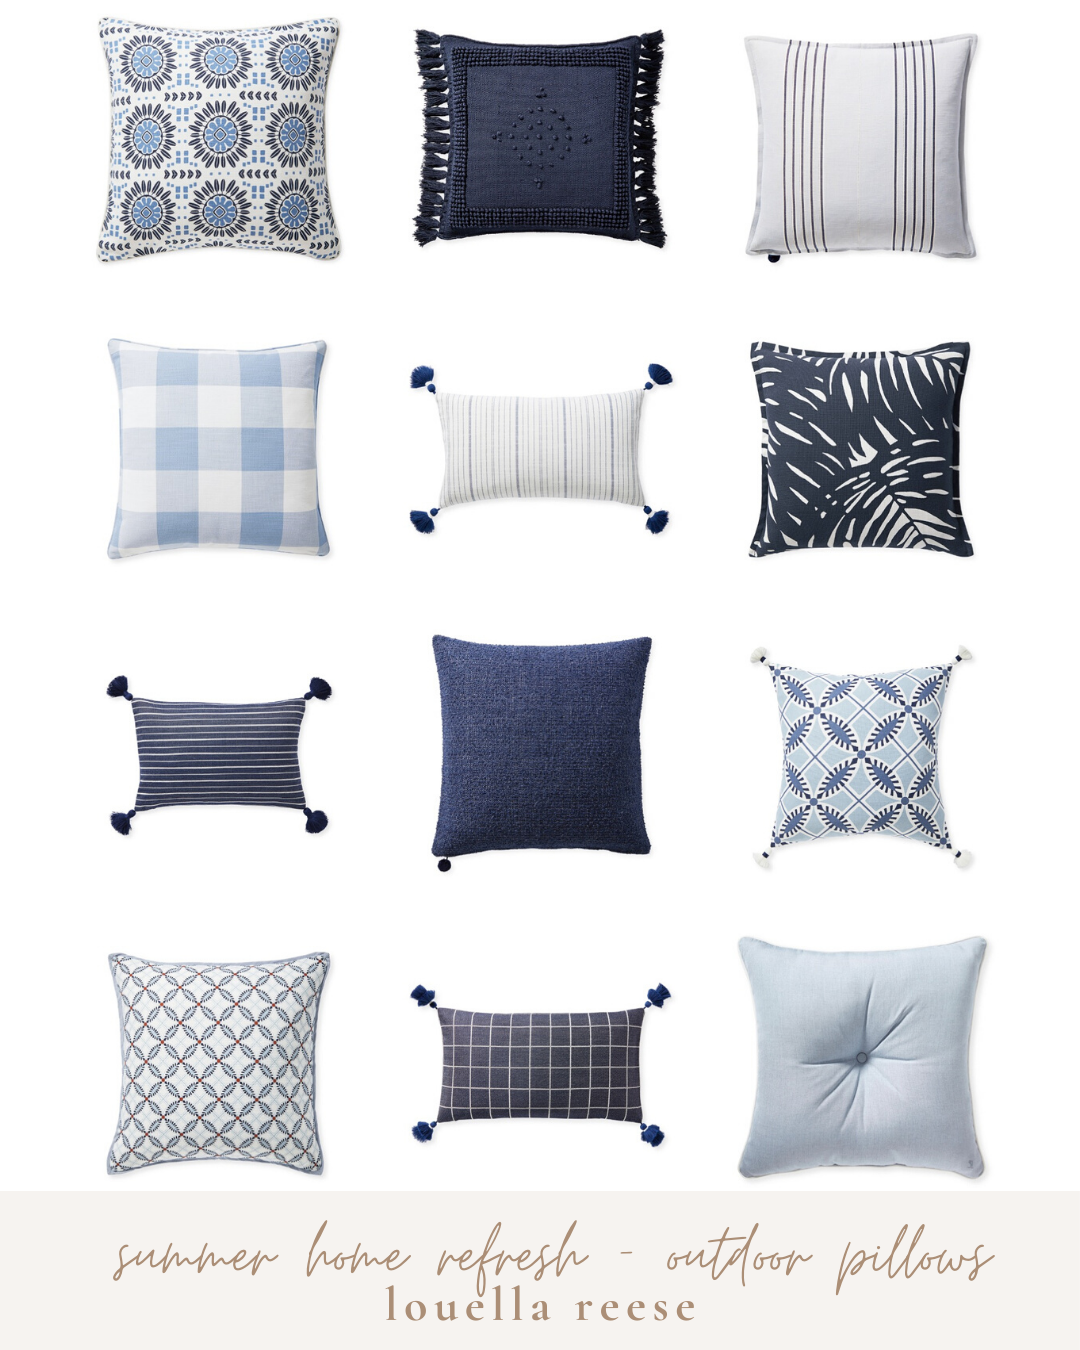 Outdoor Pillows | Blue and White Outdoor Pillows | Louella Reese